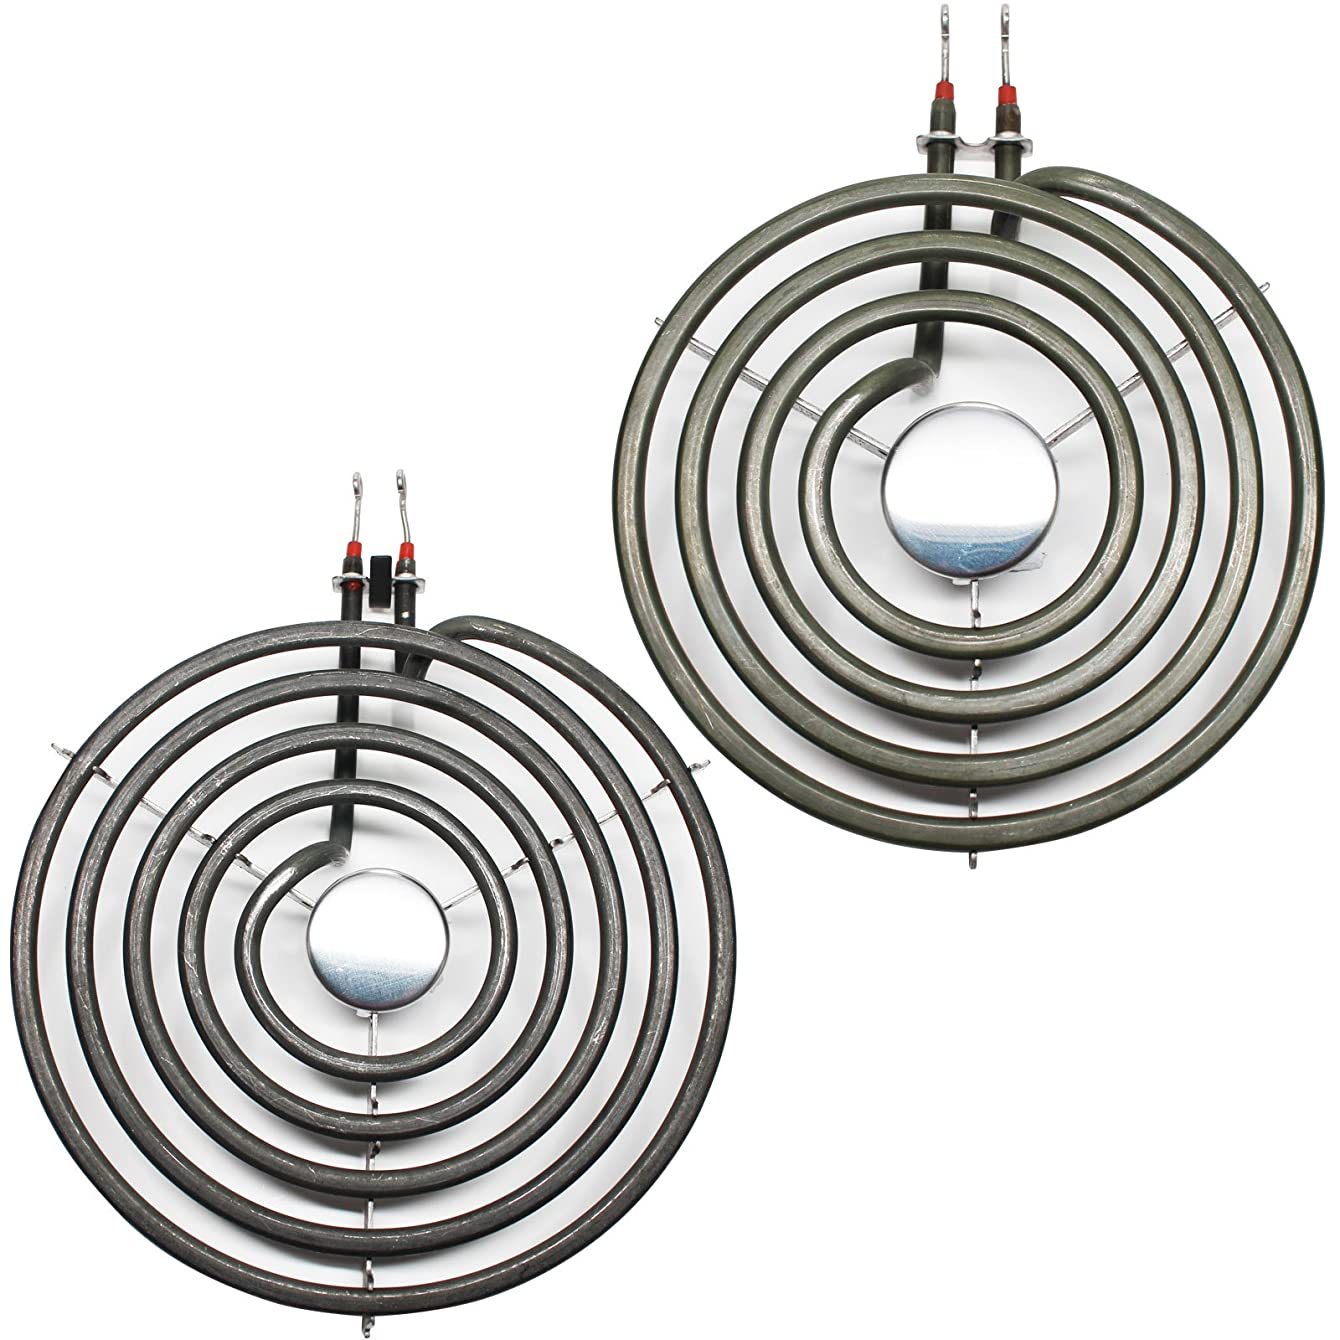 Replacement Whirlpool RF367LXKQ0 8 inch 5 Turns & 6 inch 4 Turns Surface Burner Elements - Compatible Whirlpool 9761345 & 660532 Heating Element for Range, Stove & Cooktop